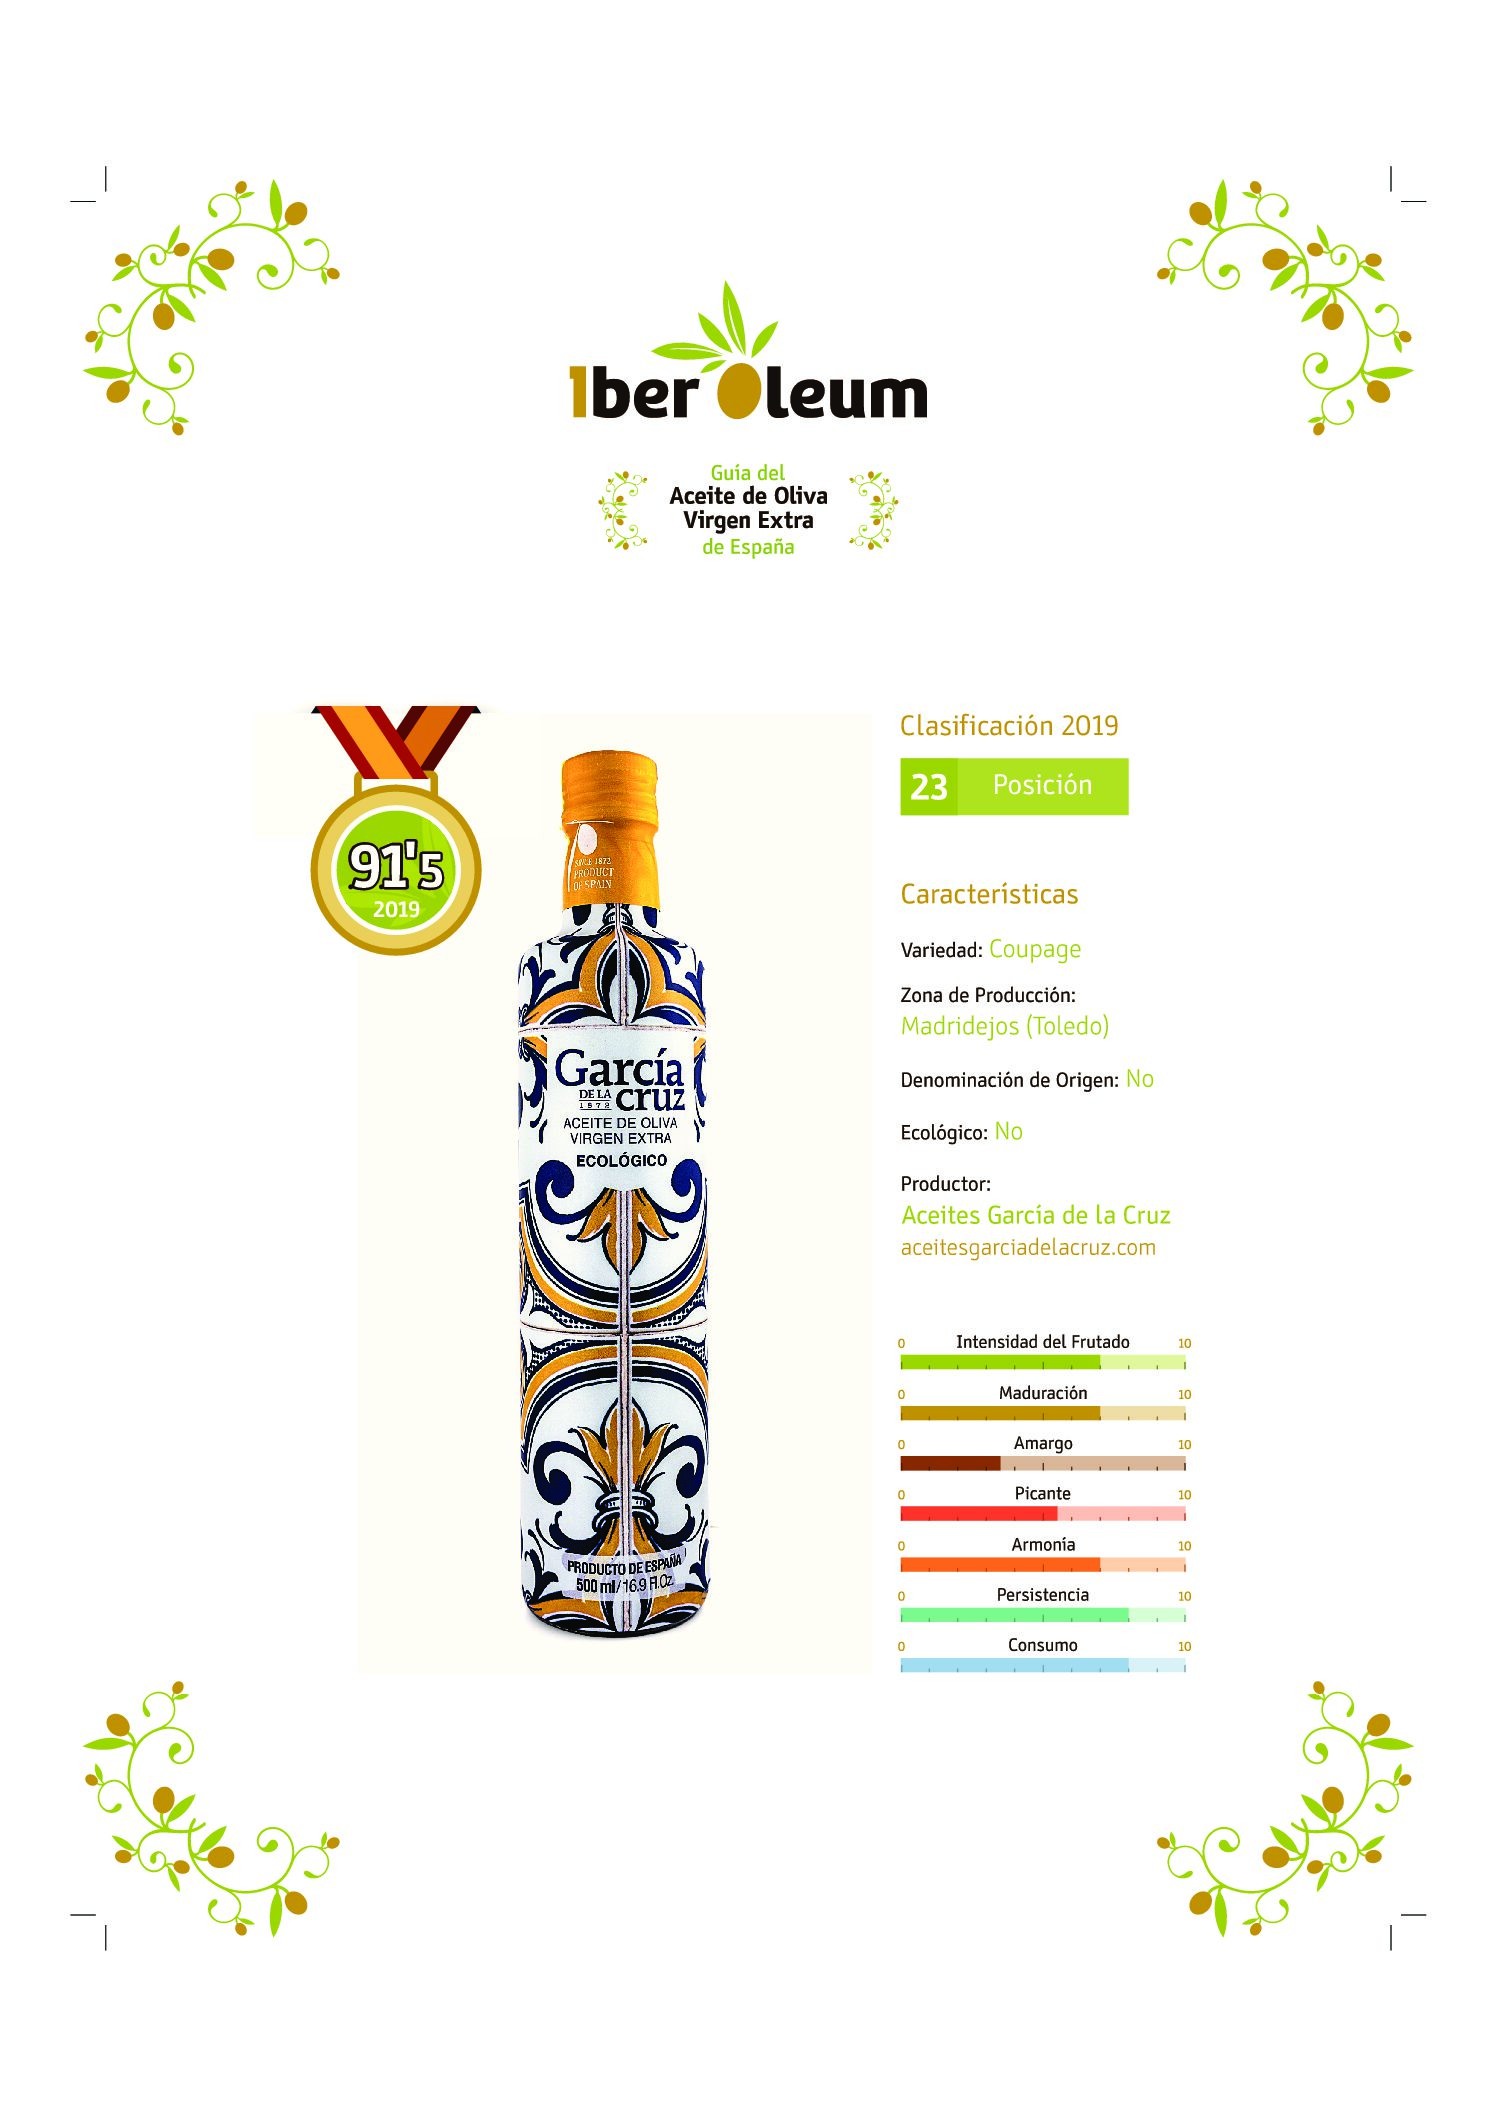 Classified among the best extra virgin olive oils of the Iberoleum guide. Master Miller.